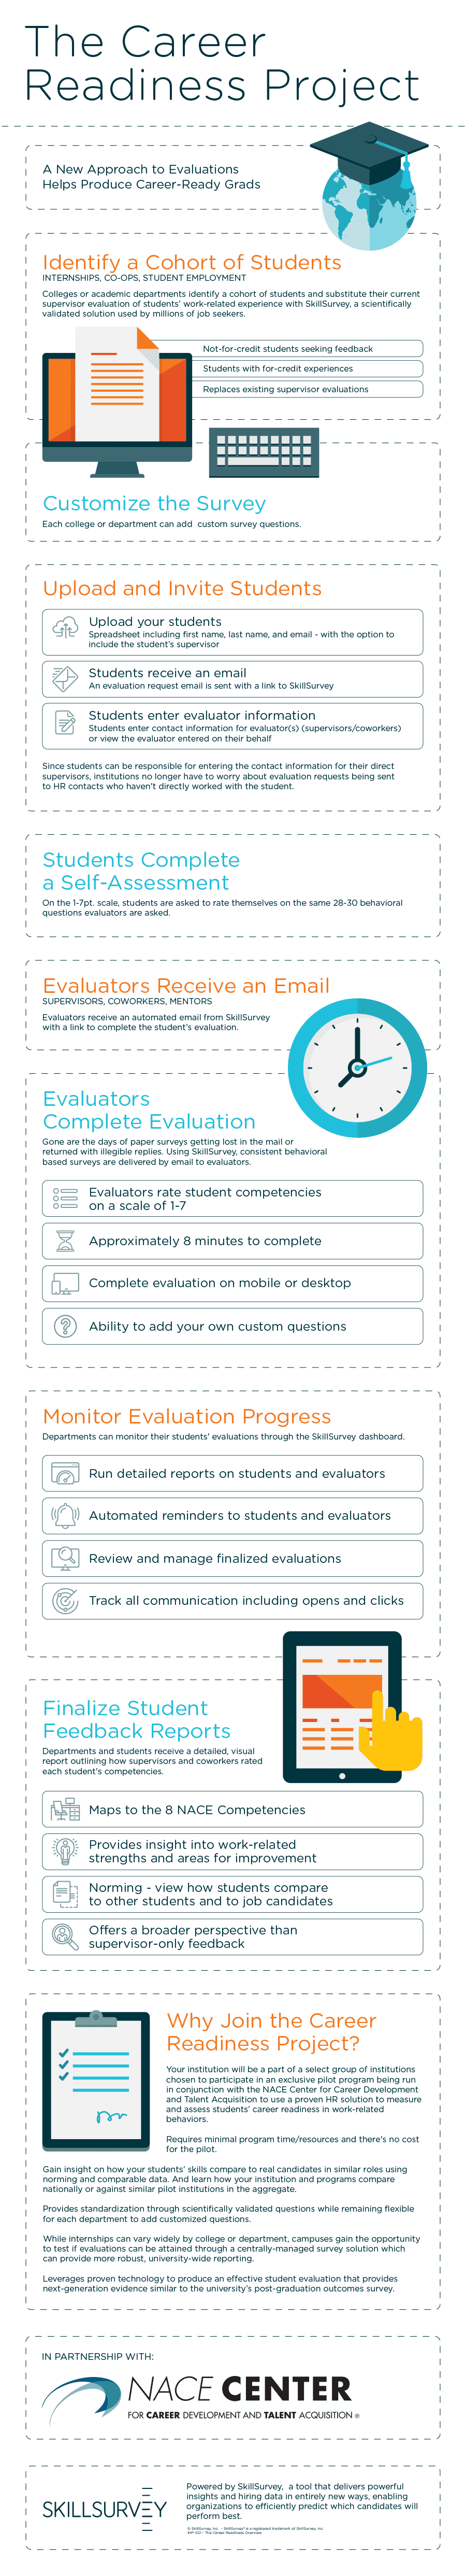 Career Readiness Infographic